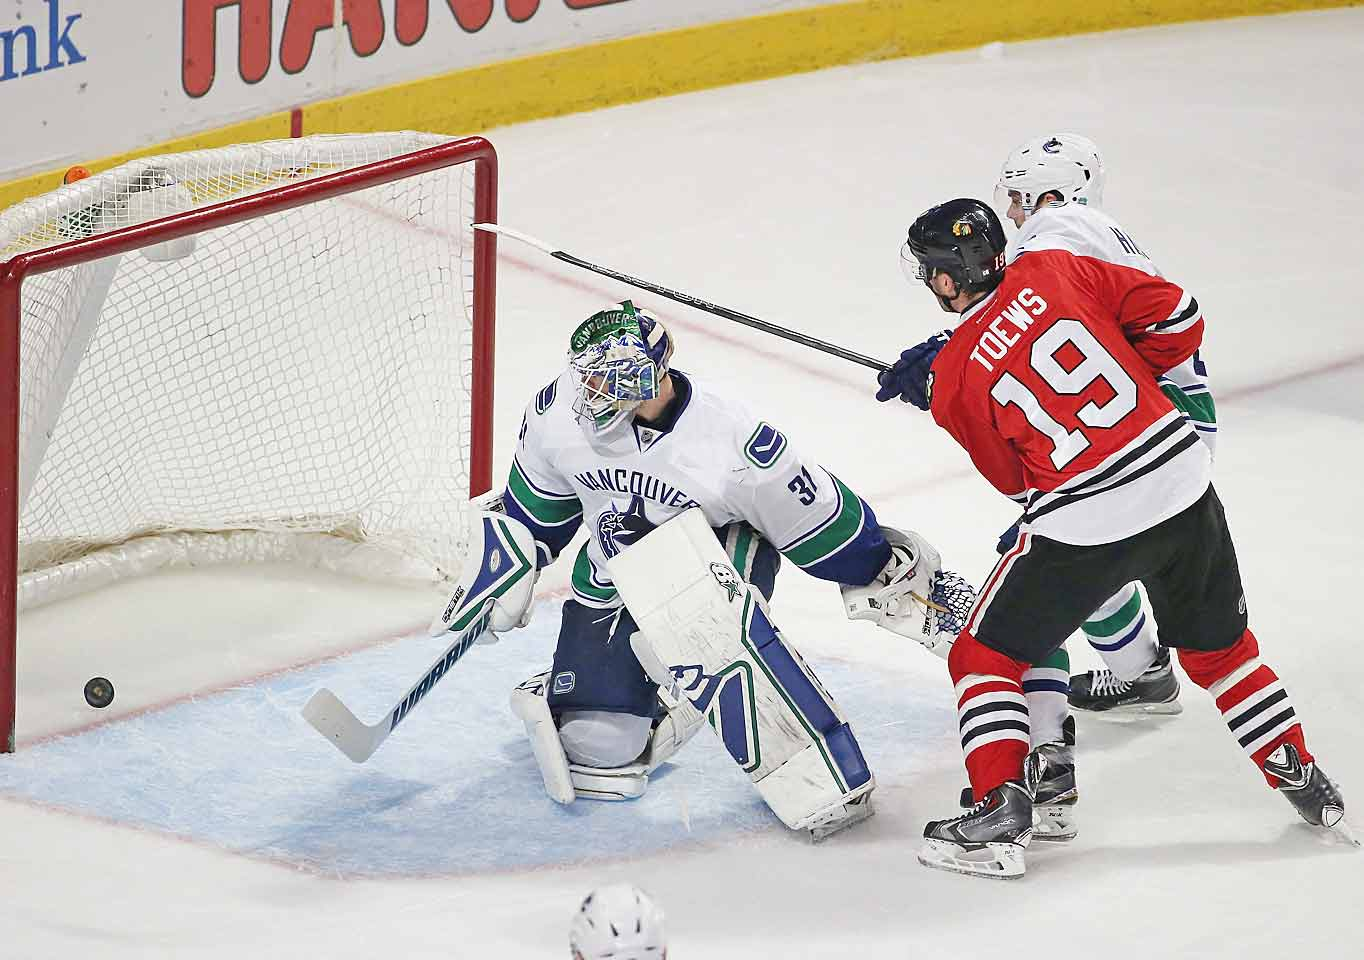 Jonathan Toews and Marcus Kruger score in the third period while Corey Crawford adds 15 saves in the frame for a total 36 on the night, out-dueling Eddie Lack in a 3-1 win over the Canucks in Chicago. The Blackhawks' 47th win of the season clinches a playoff spot for the seventh straight year.